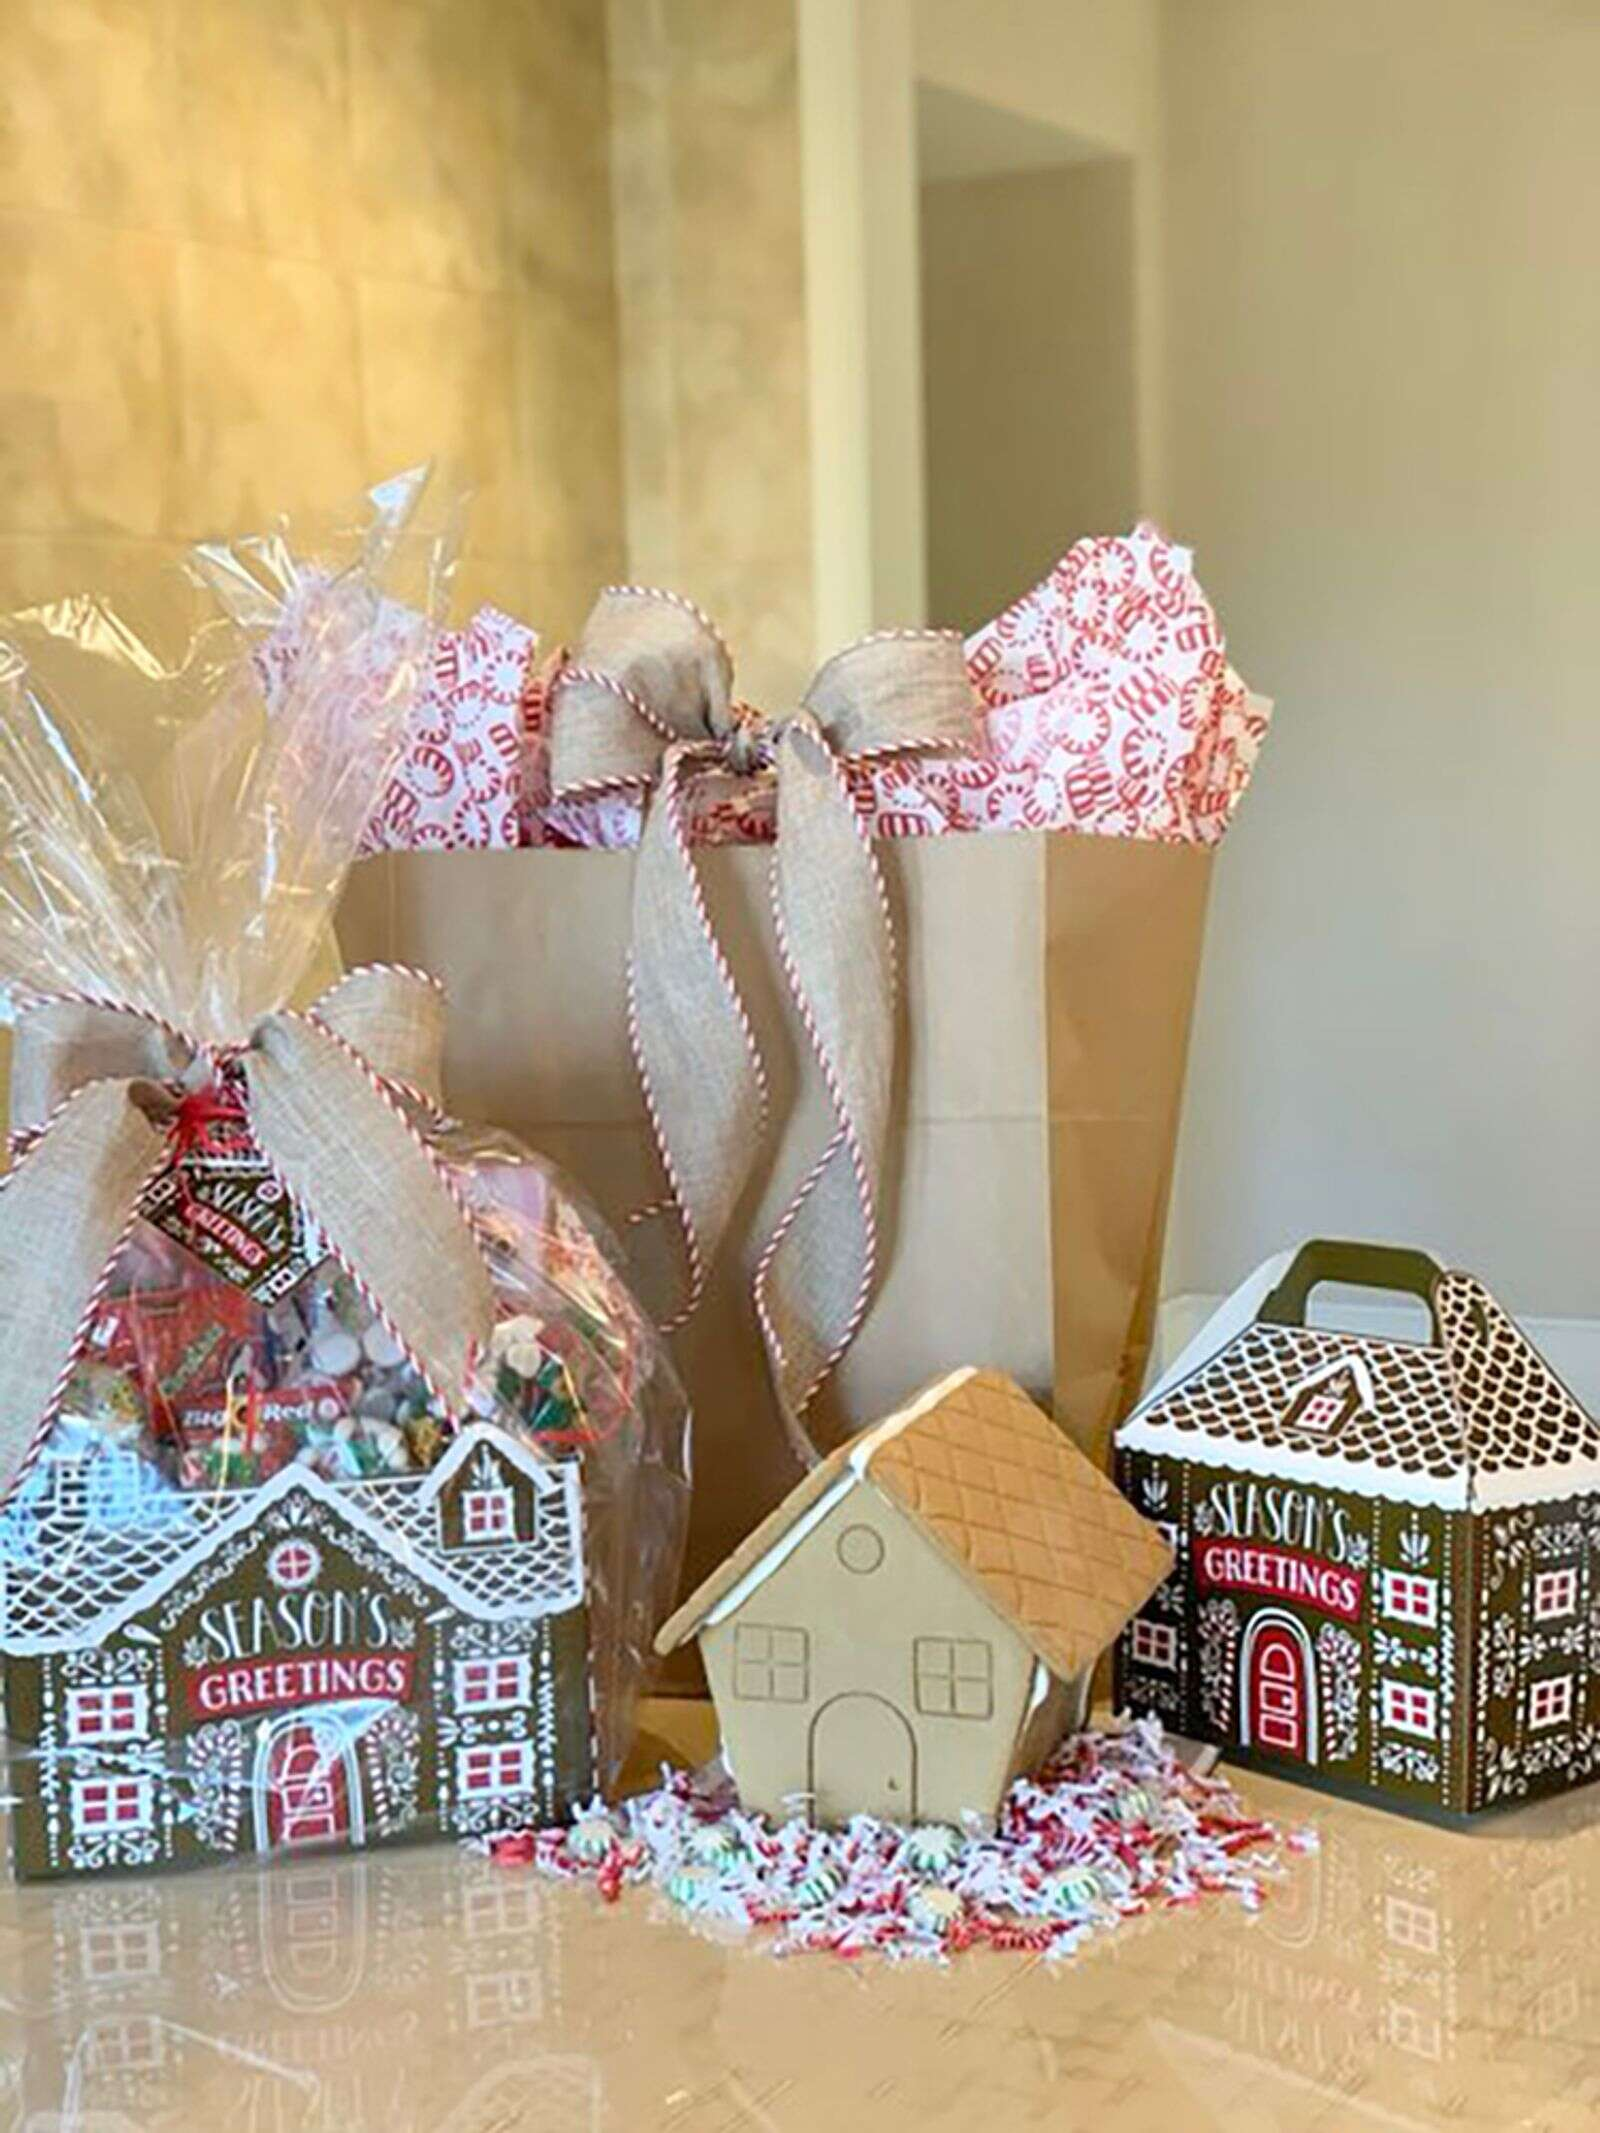 The Buddy Program's creative gingerbread house kits. Courtesy photo.